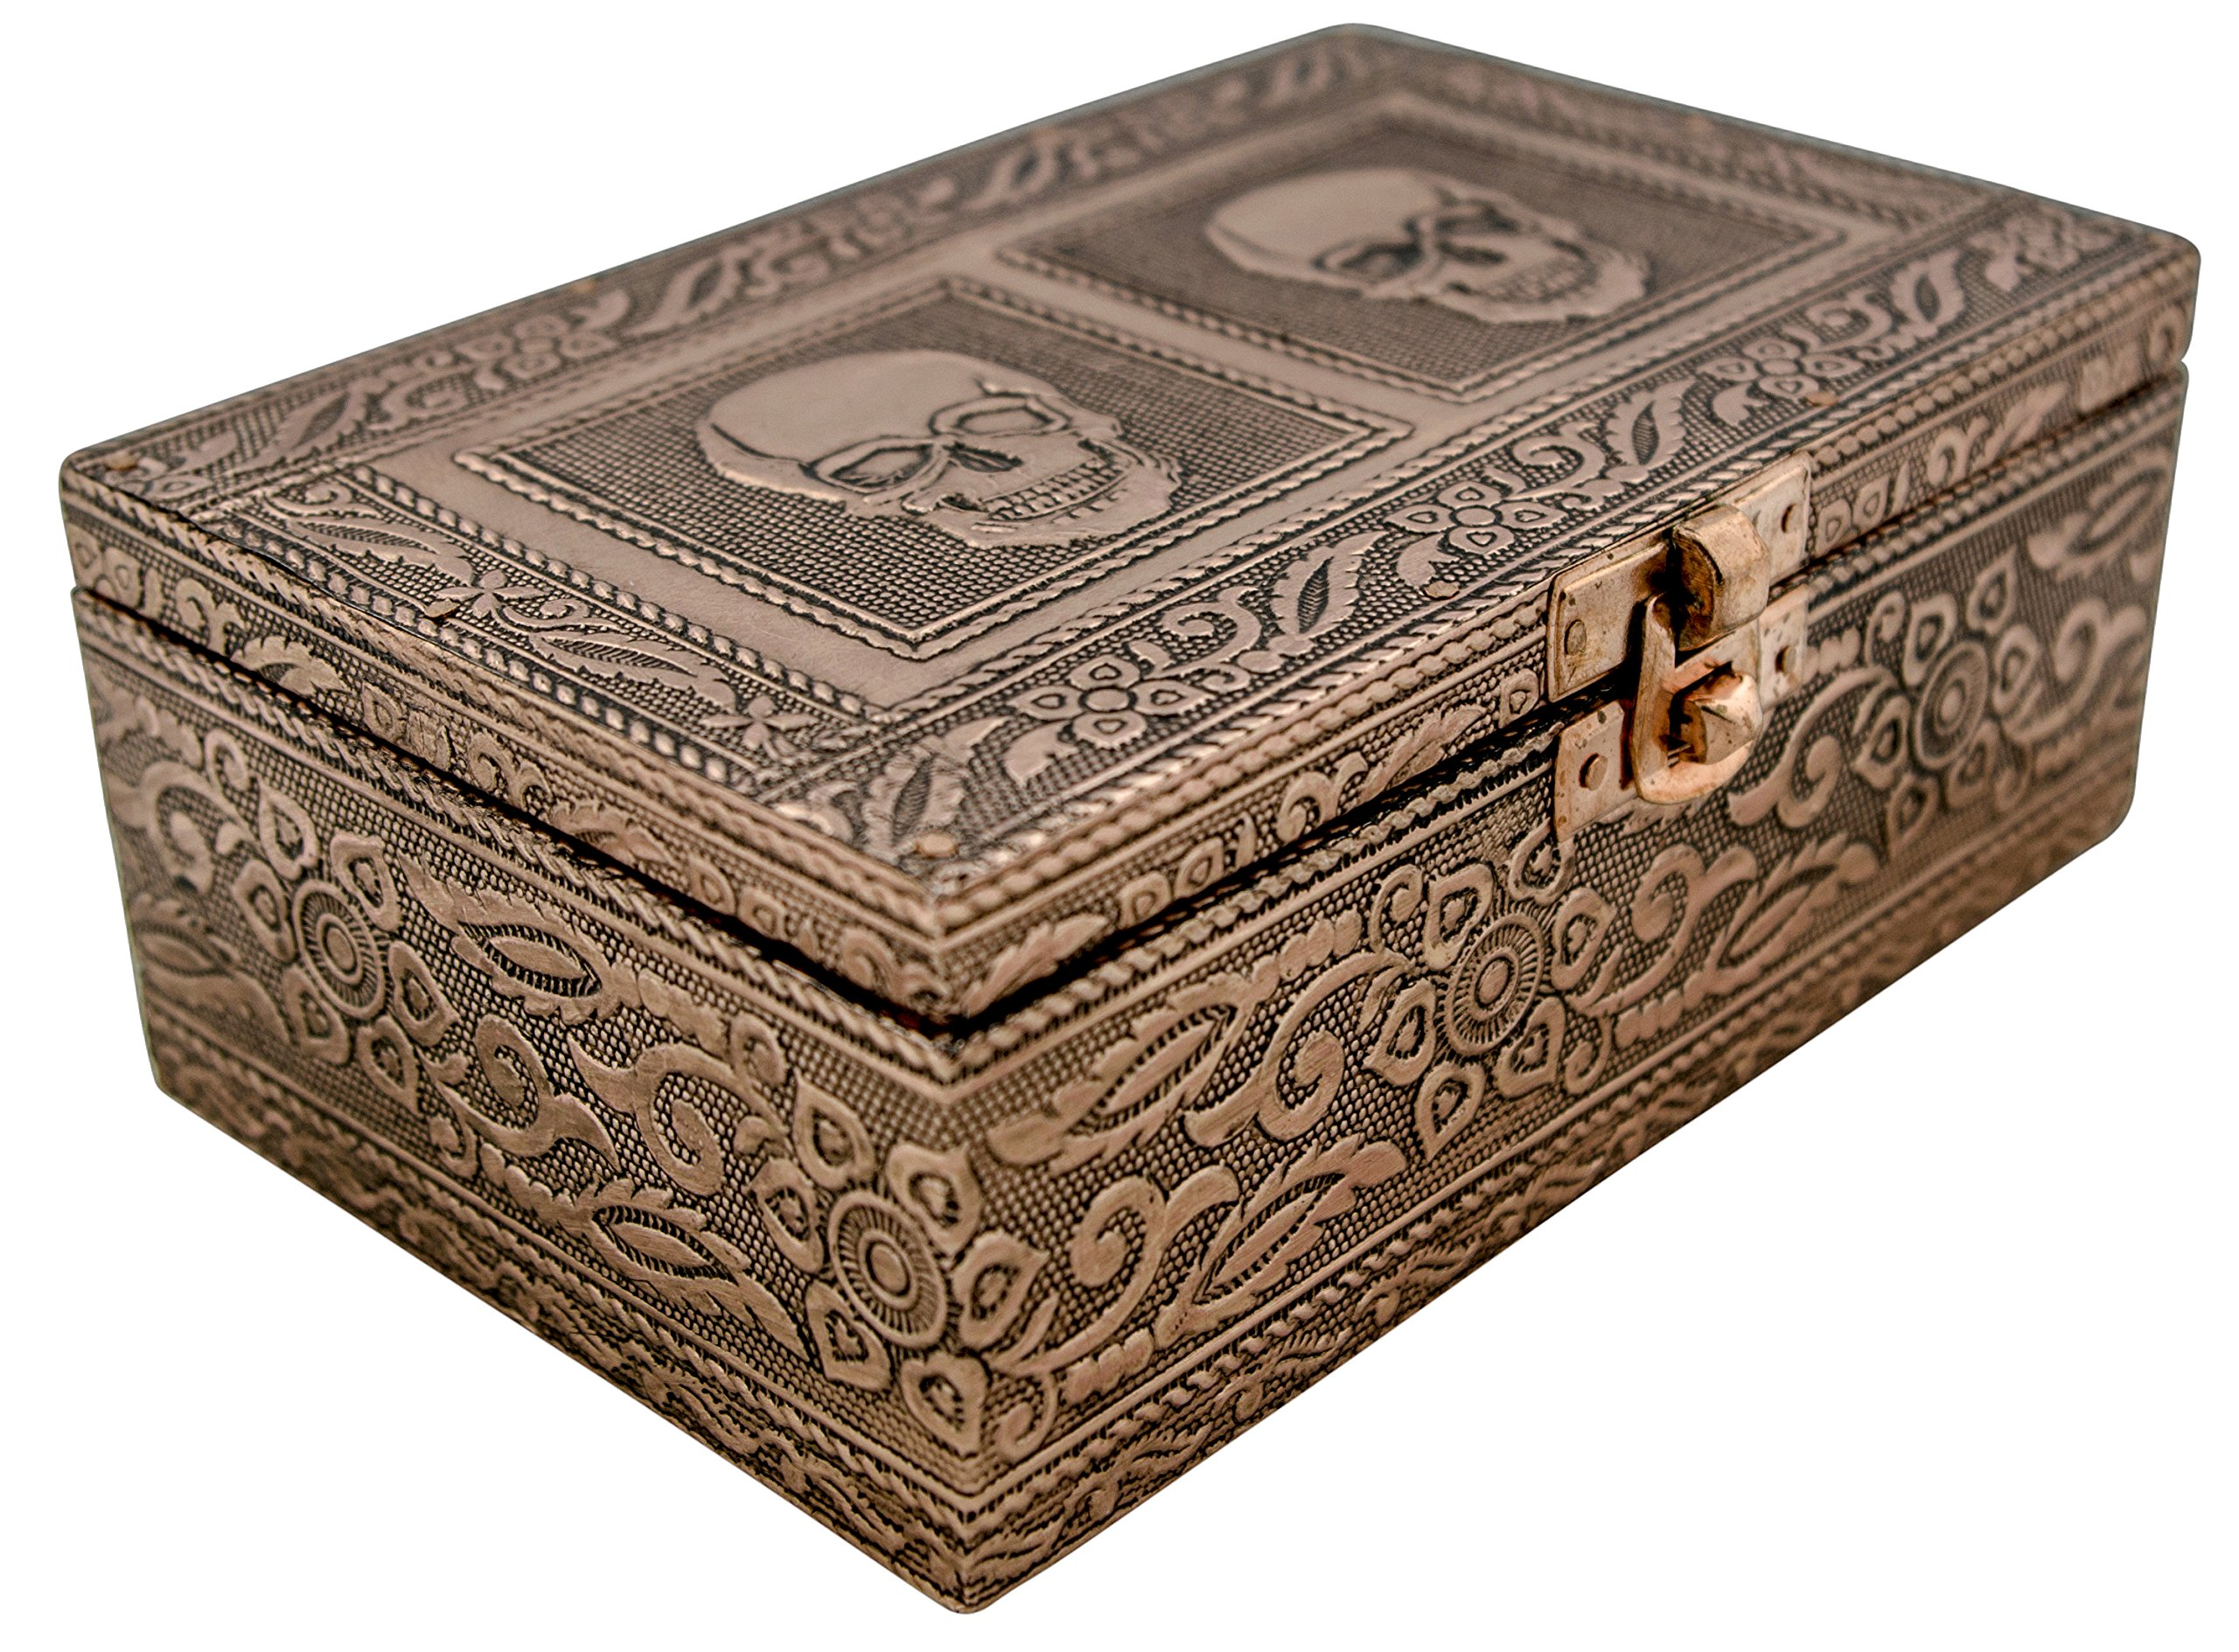 VGI Elegant Jewelry Box with Hammered Metal Cladding and Soft Fabric Interior (Skull, Copper Finish)